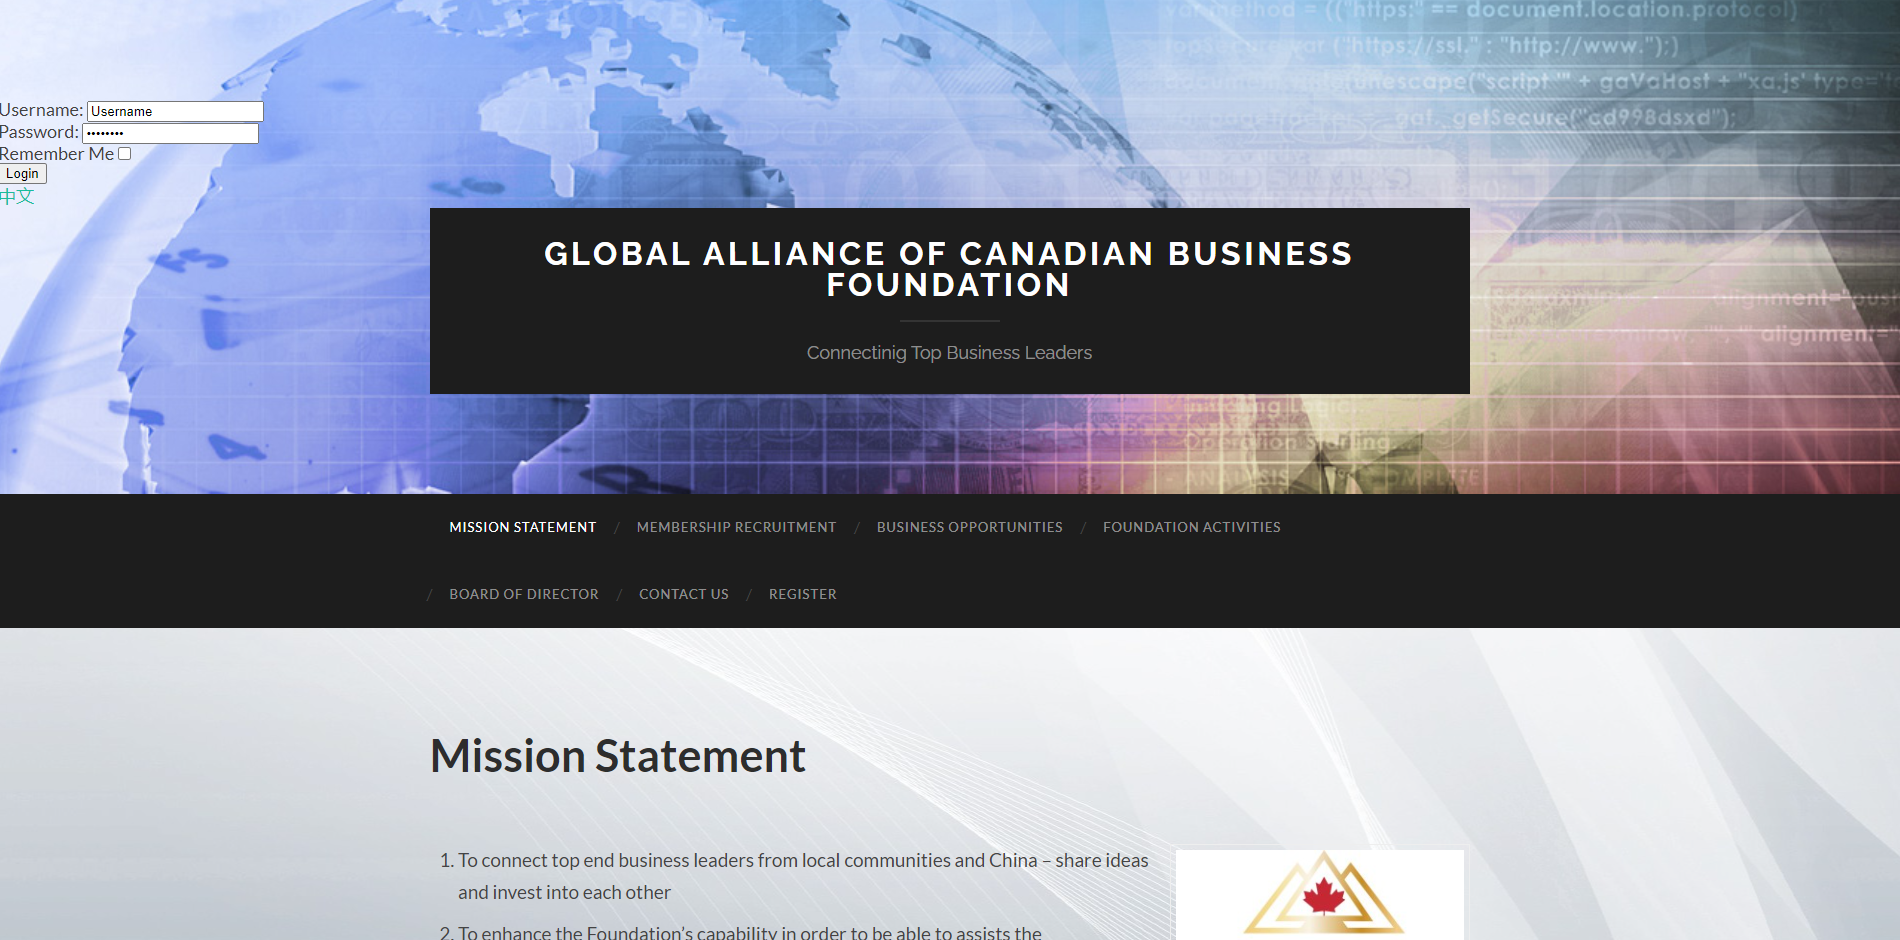 Global Alliance of Canadian Business Foundation